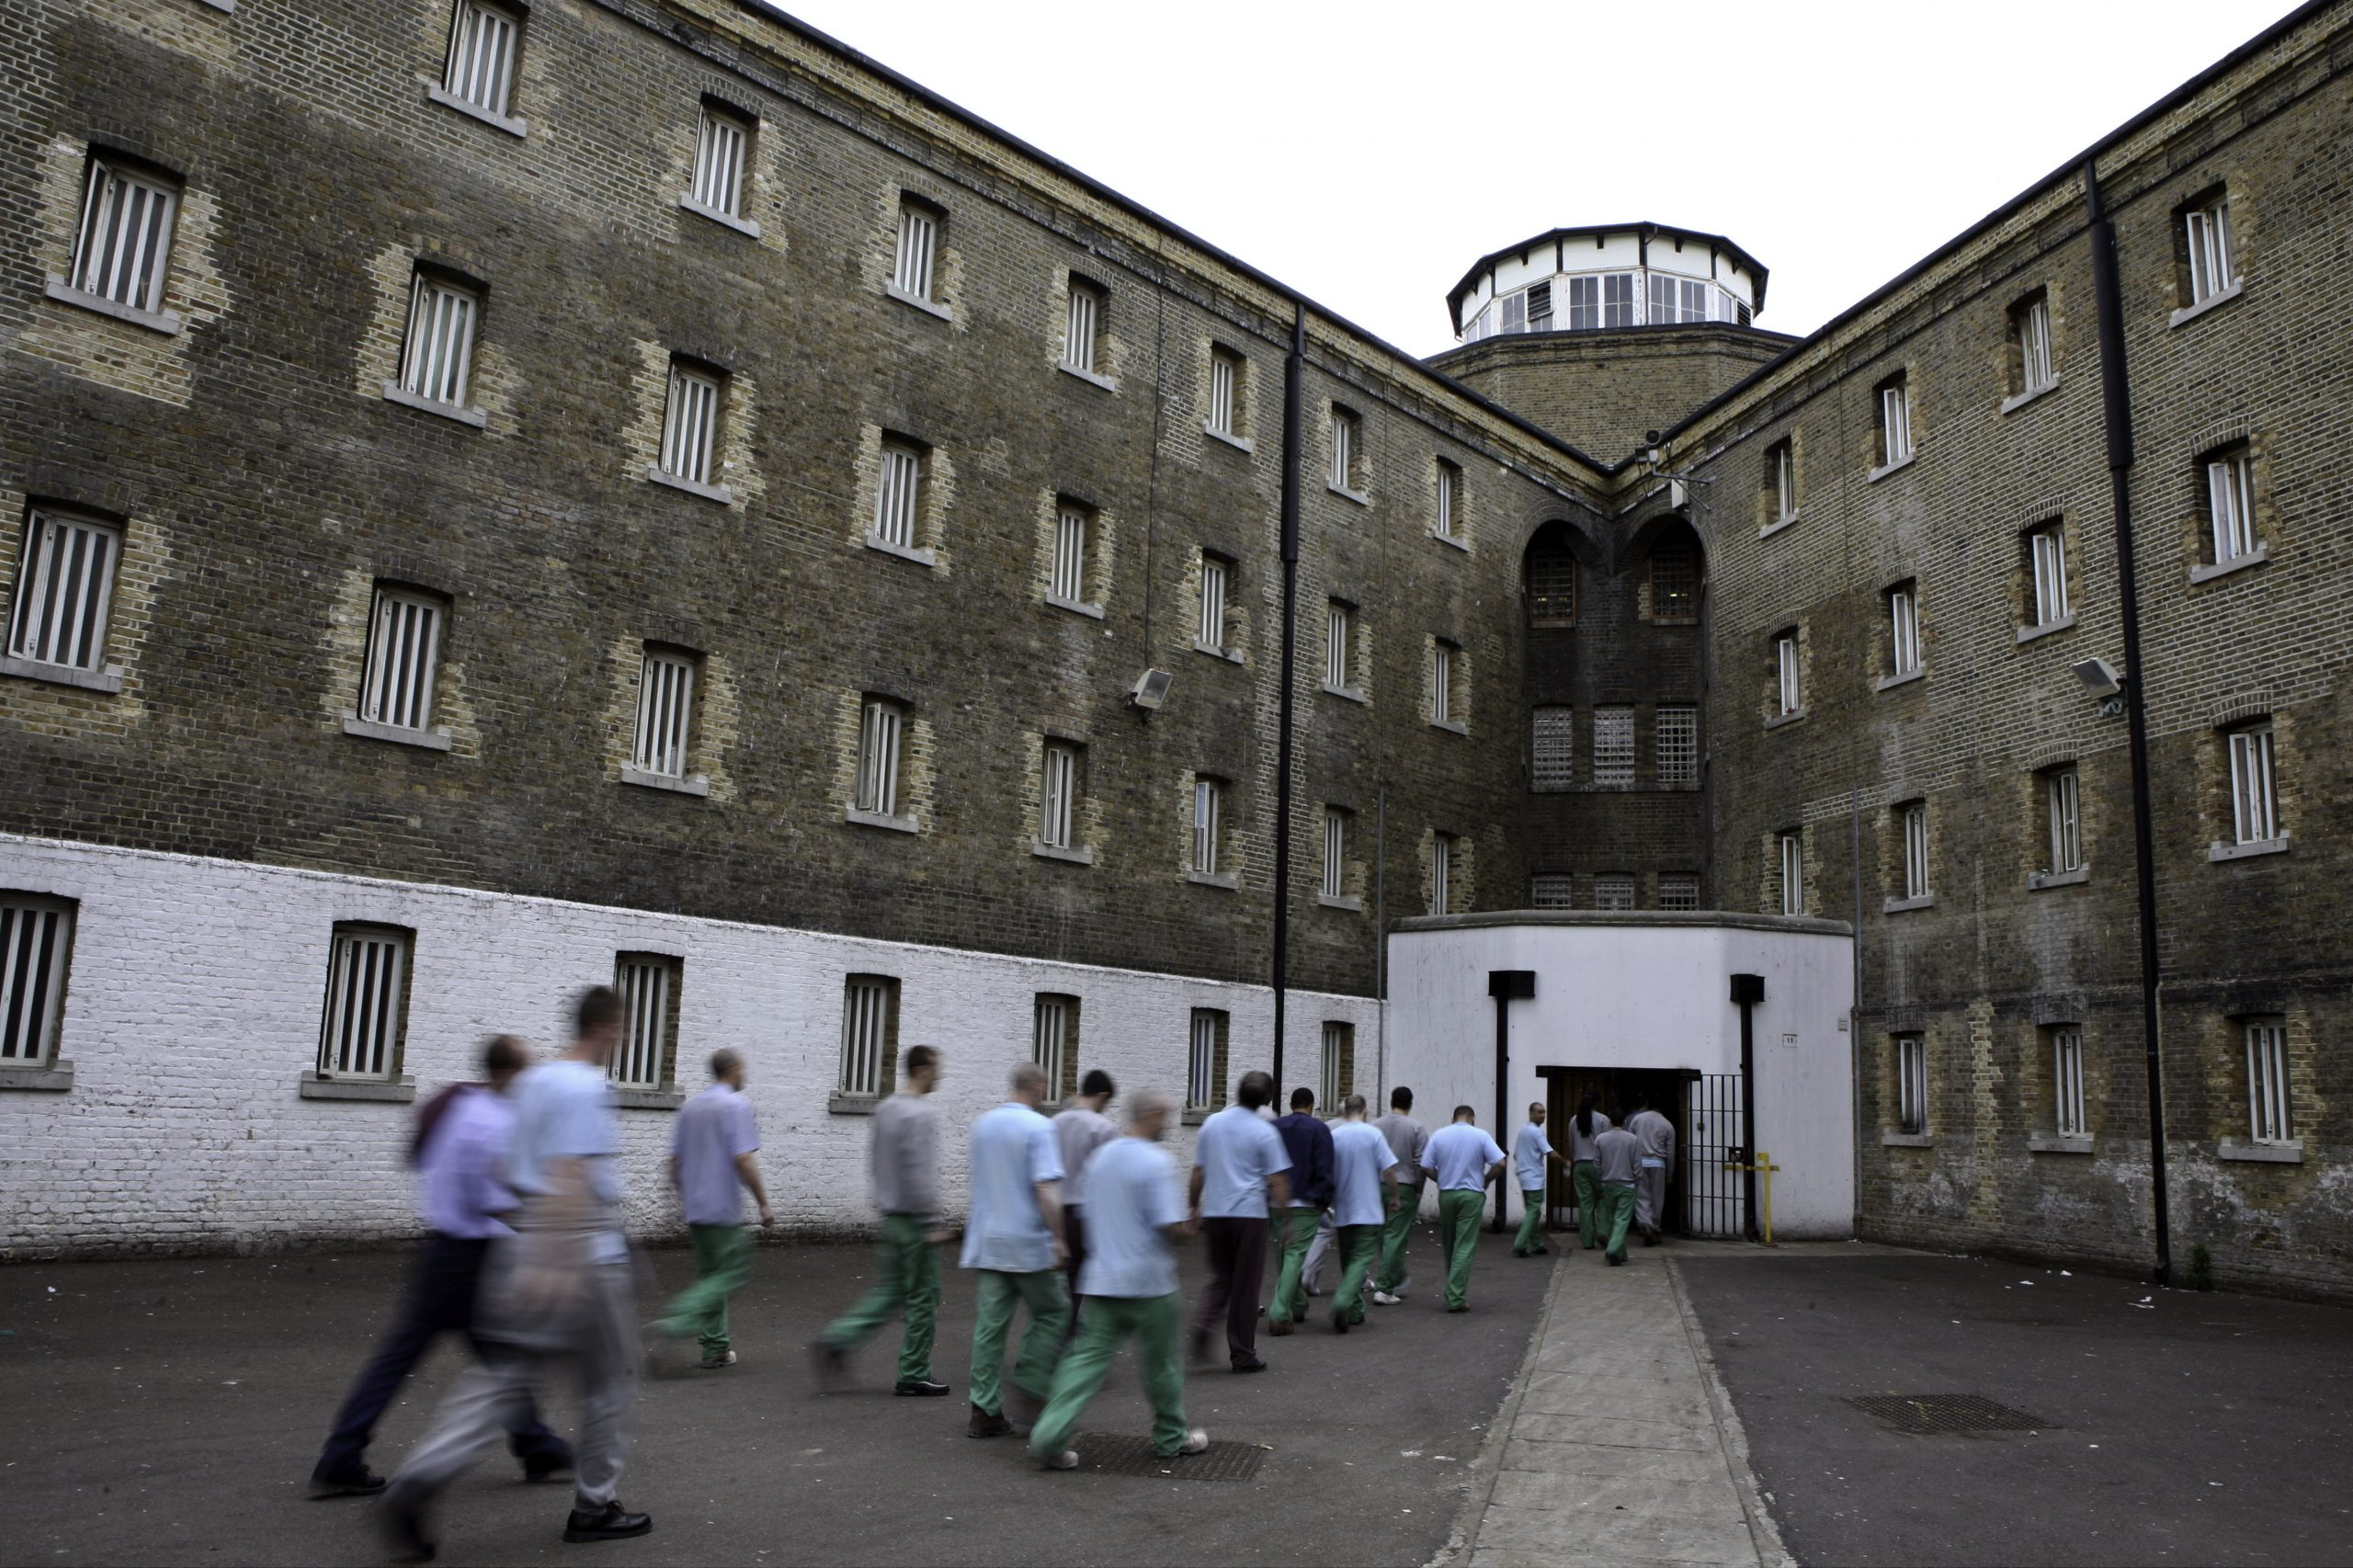 Health and safety watchdog forced to reveal findings of inspections into dangerous prisons